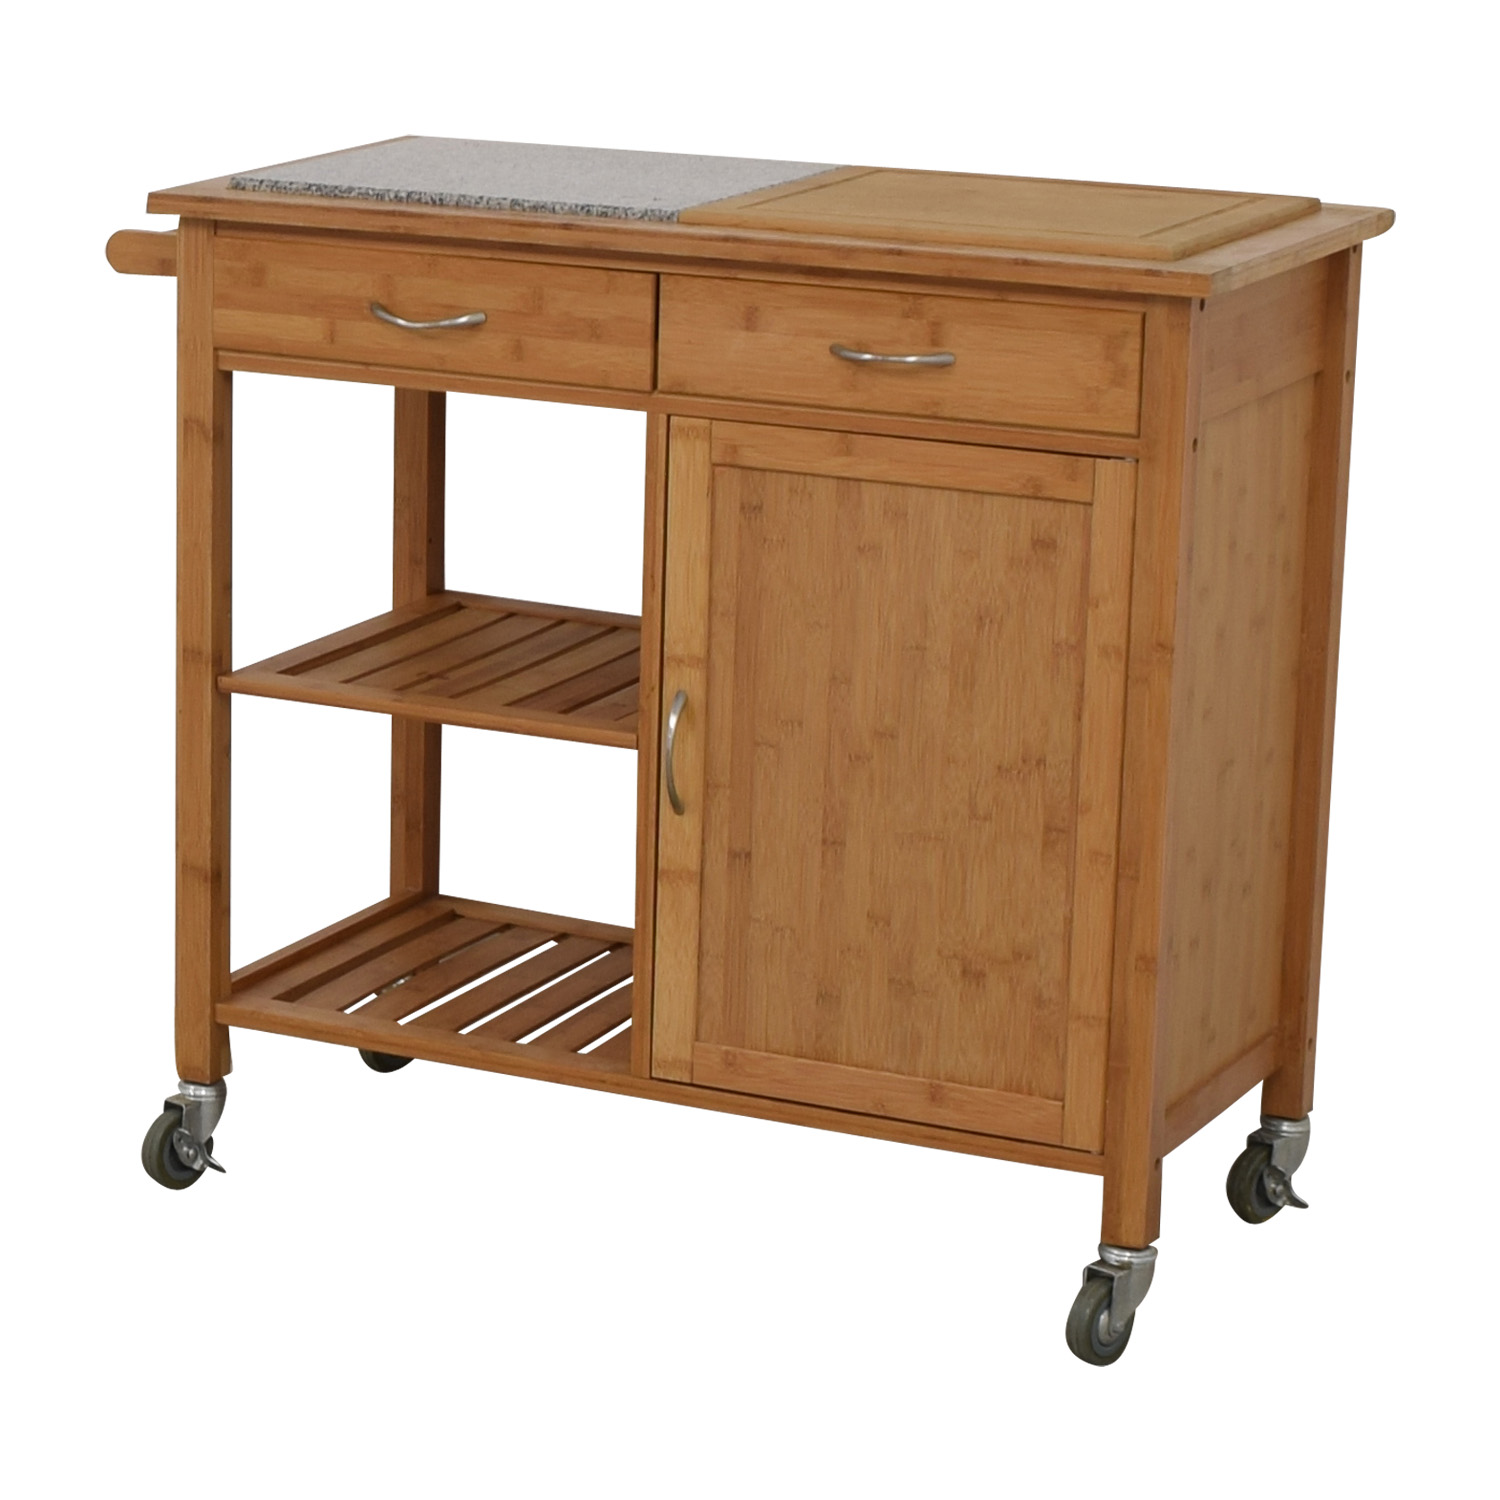 IKEA IKEA Natural Kitchen Island on Castors for sale